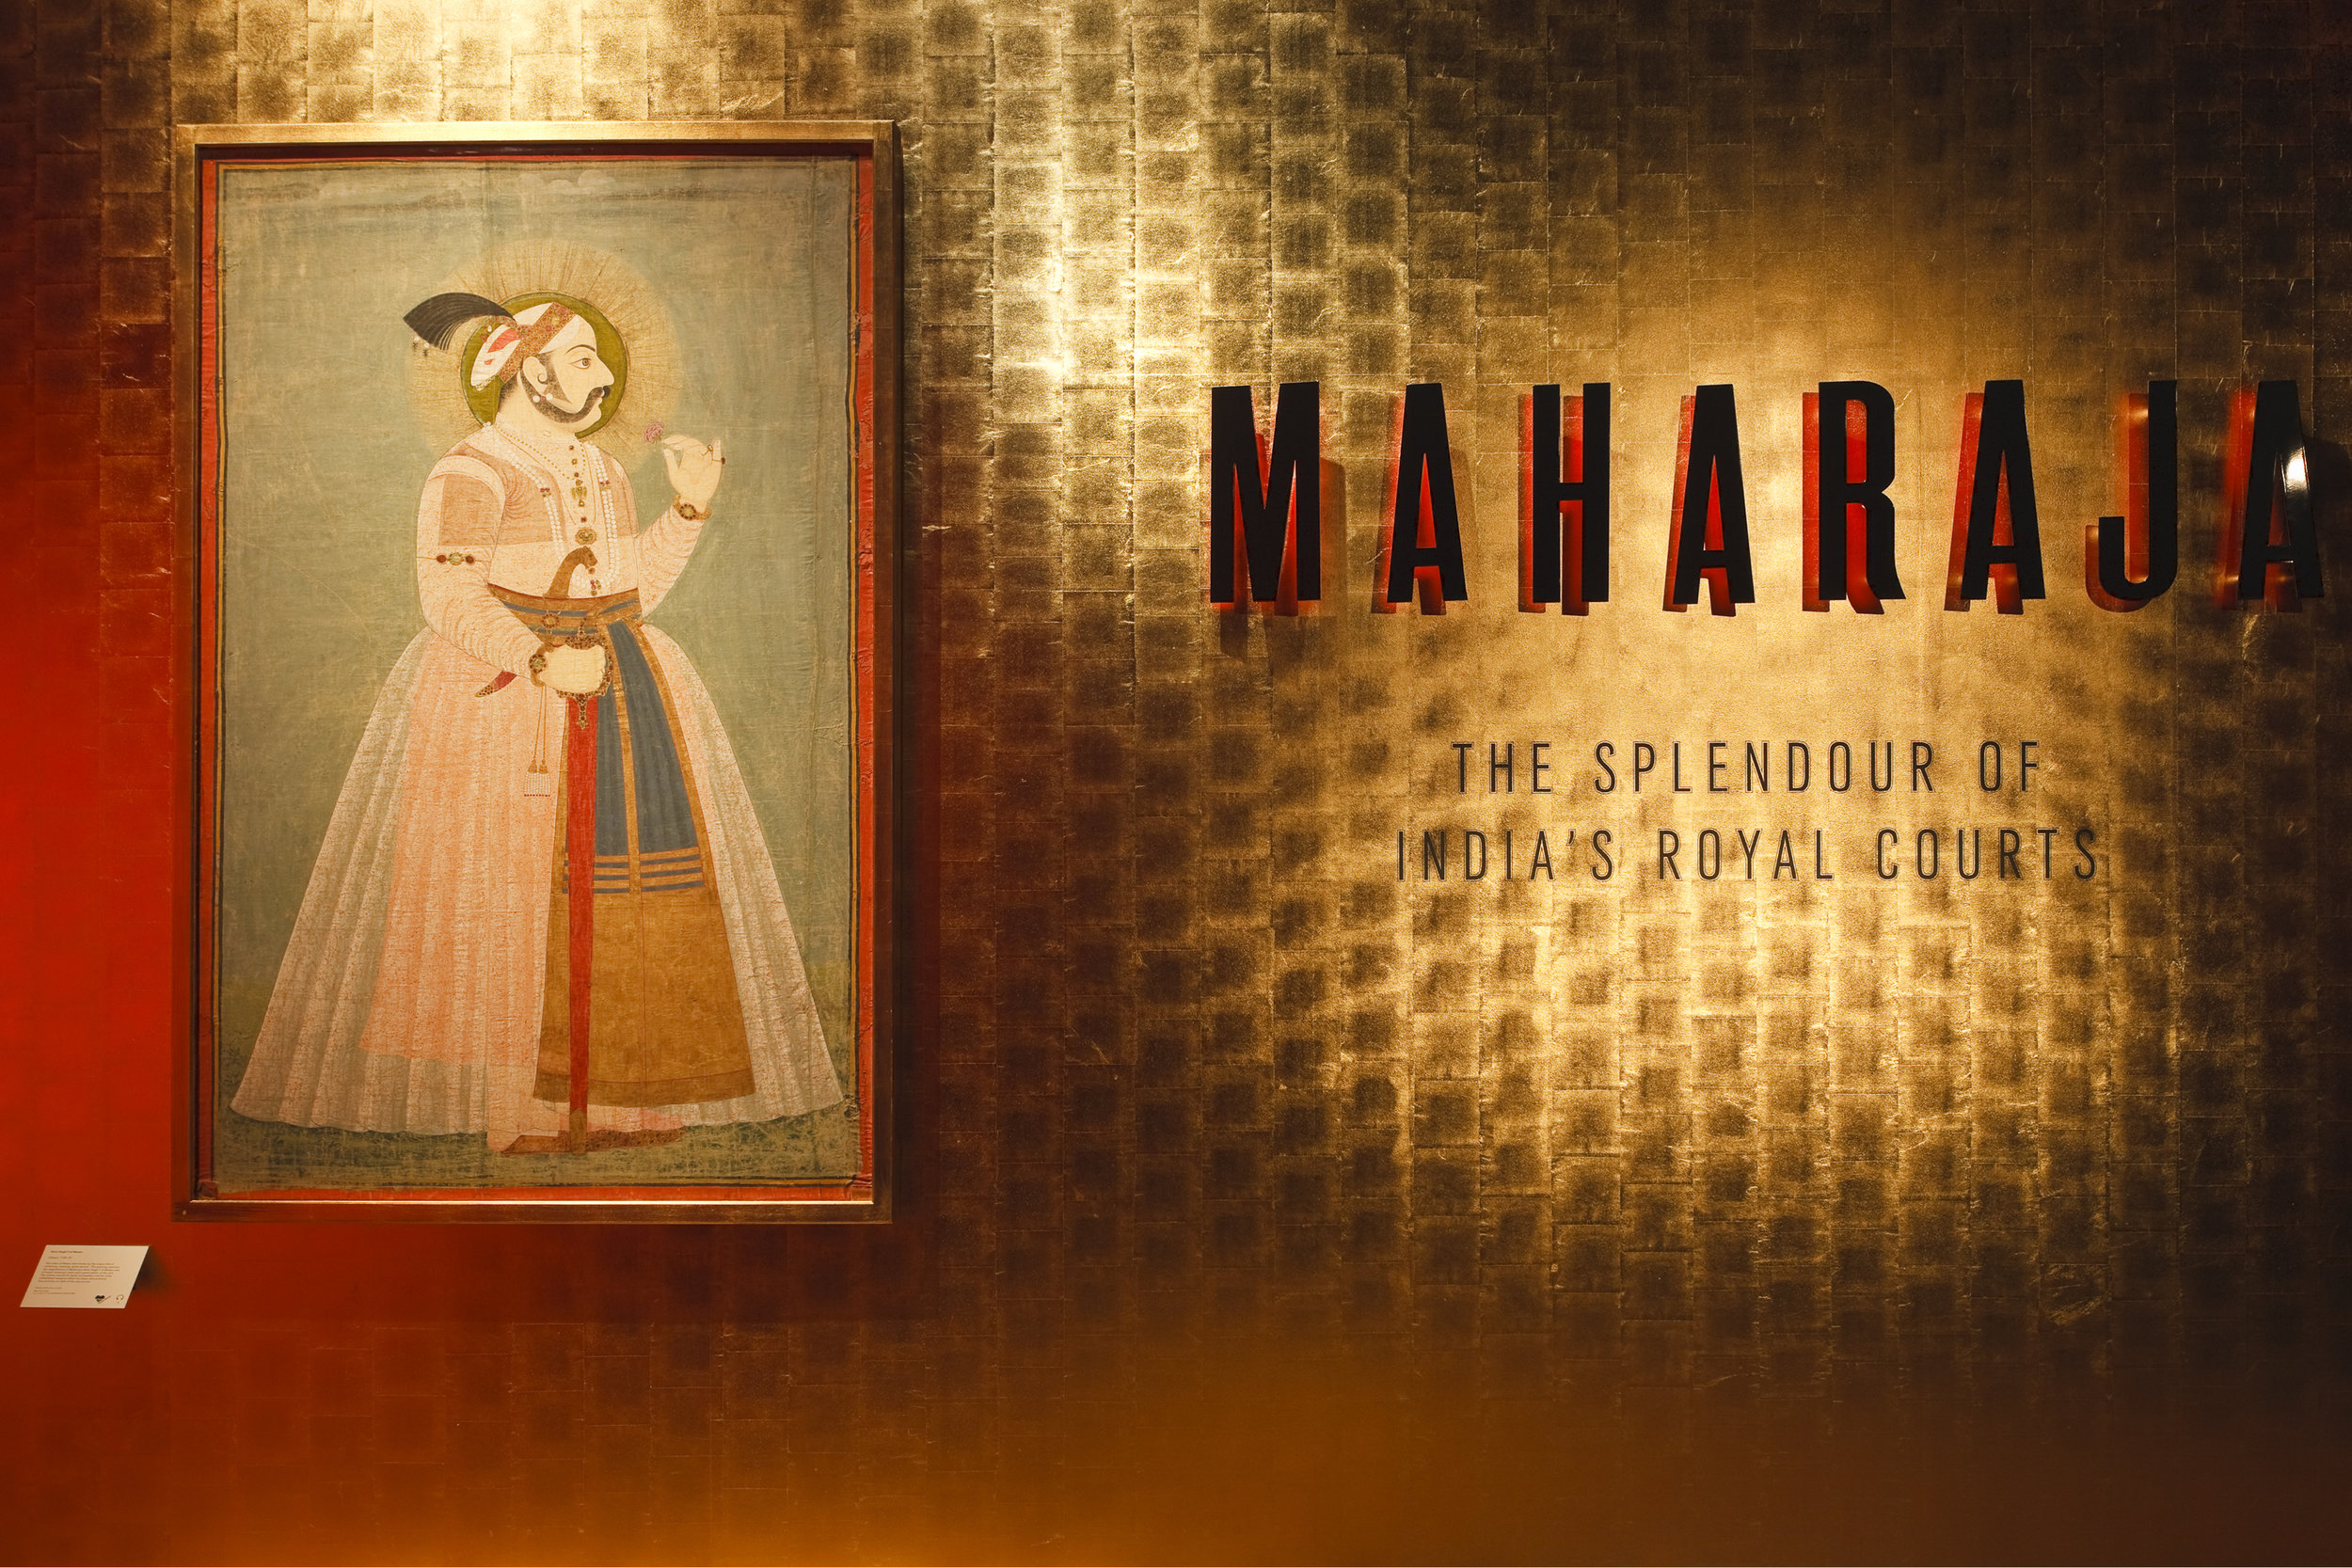 The Splendour of Indias Maharaja's and their Royal Courts Exhibition at the V&A Museum